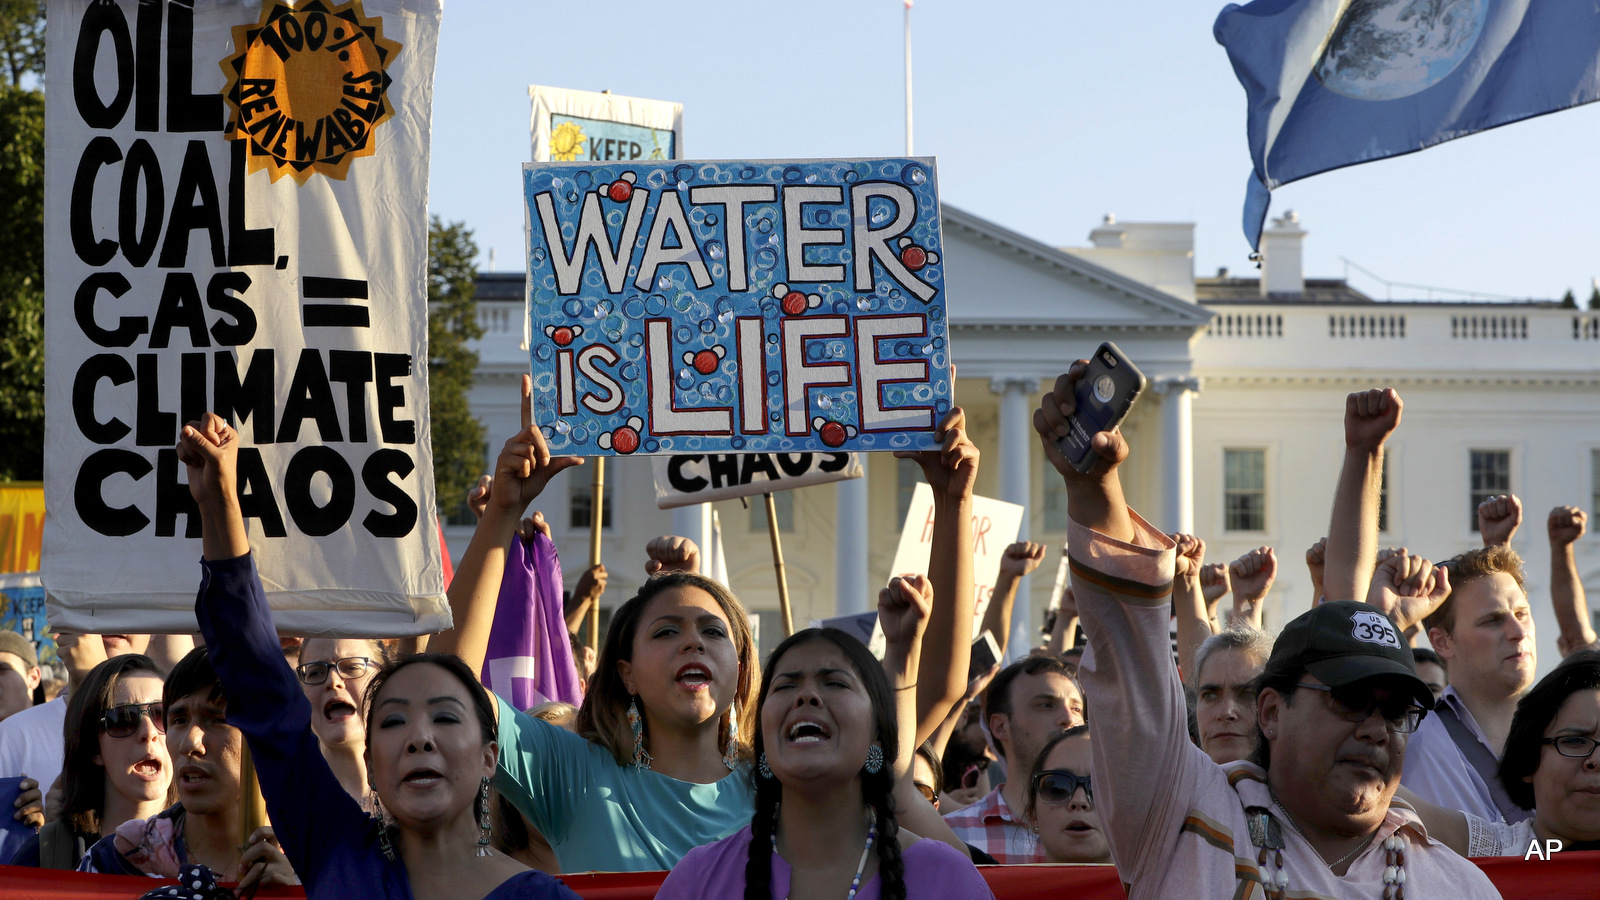 Supporters of the Standing Rock Sioux Tribe rally in opposition of the Dakota Access oil pipeline in front of the White House, Tuesday, Sept. 13, 2016, in Washington.